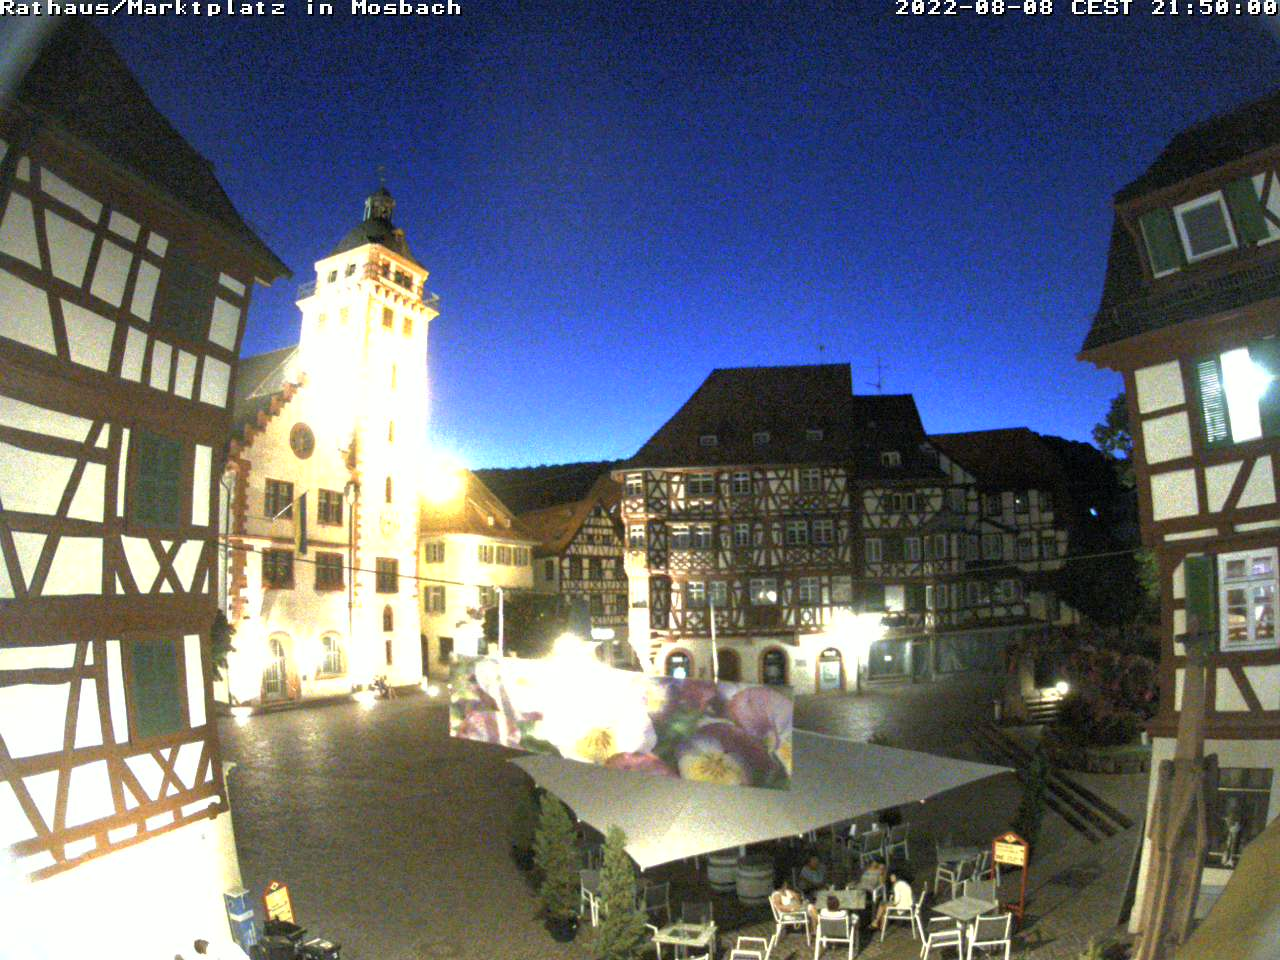 Mosbach Wed. 21:55